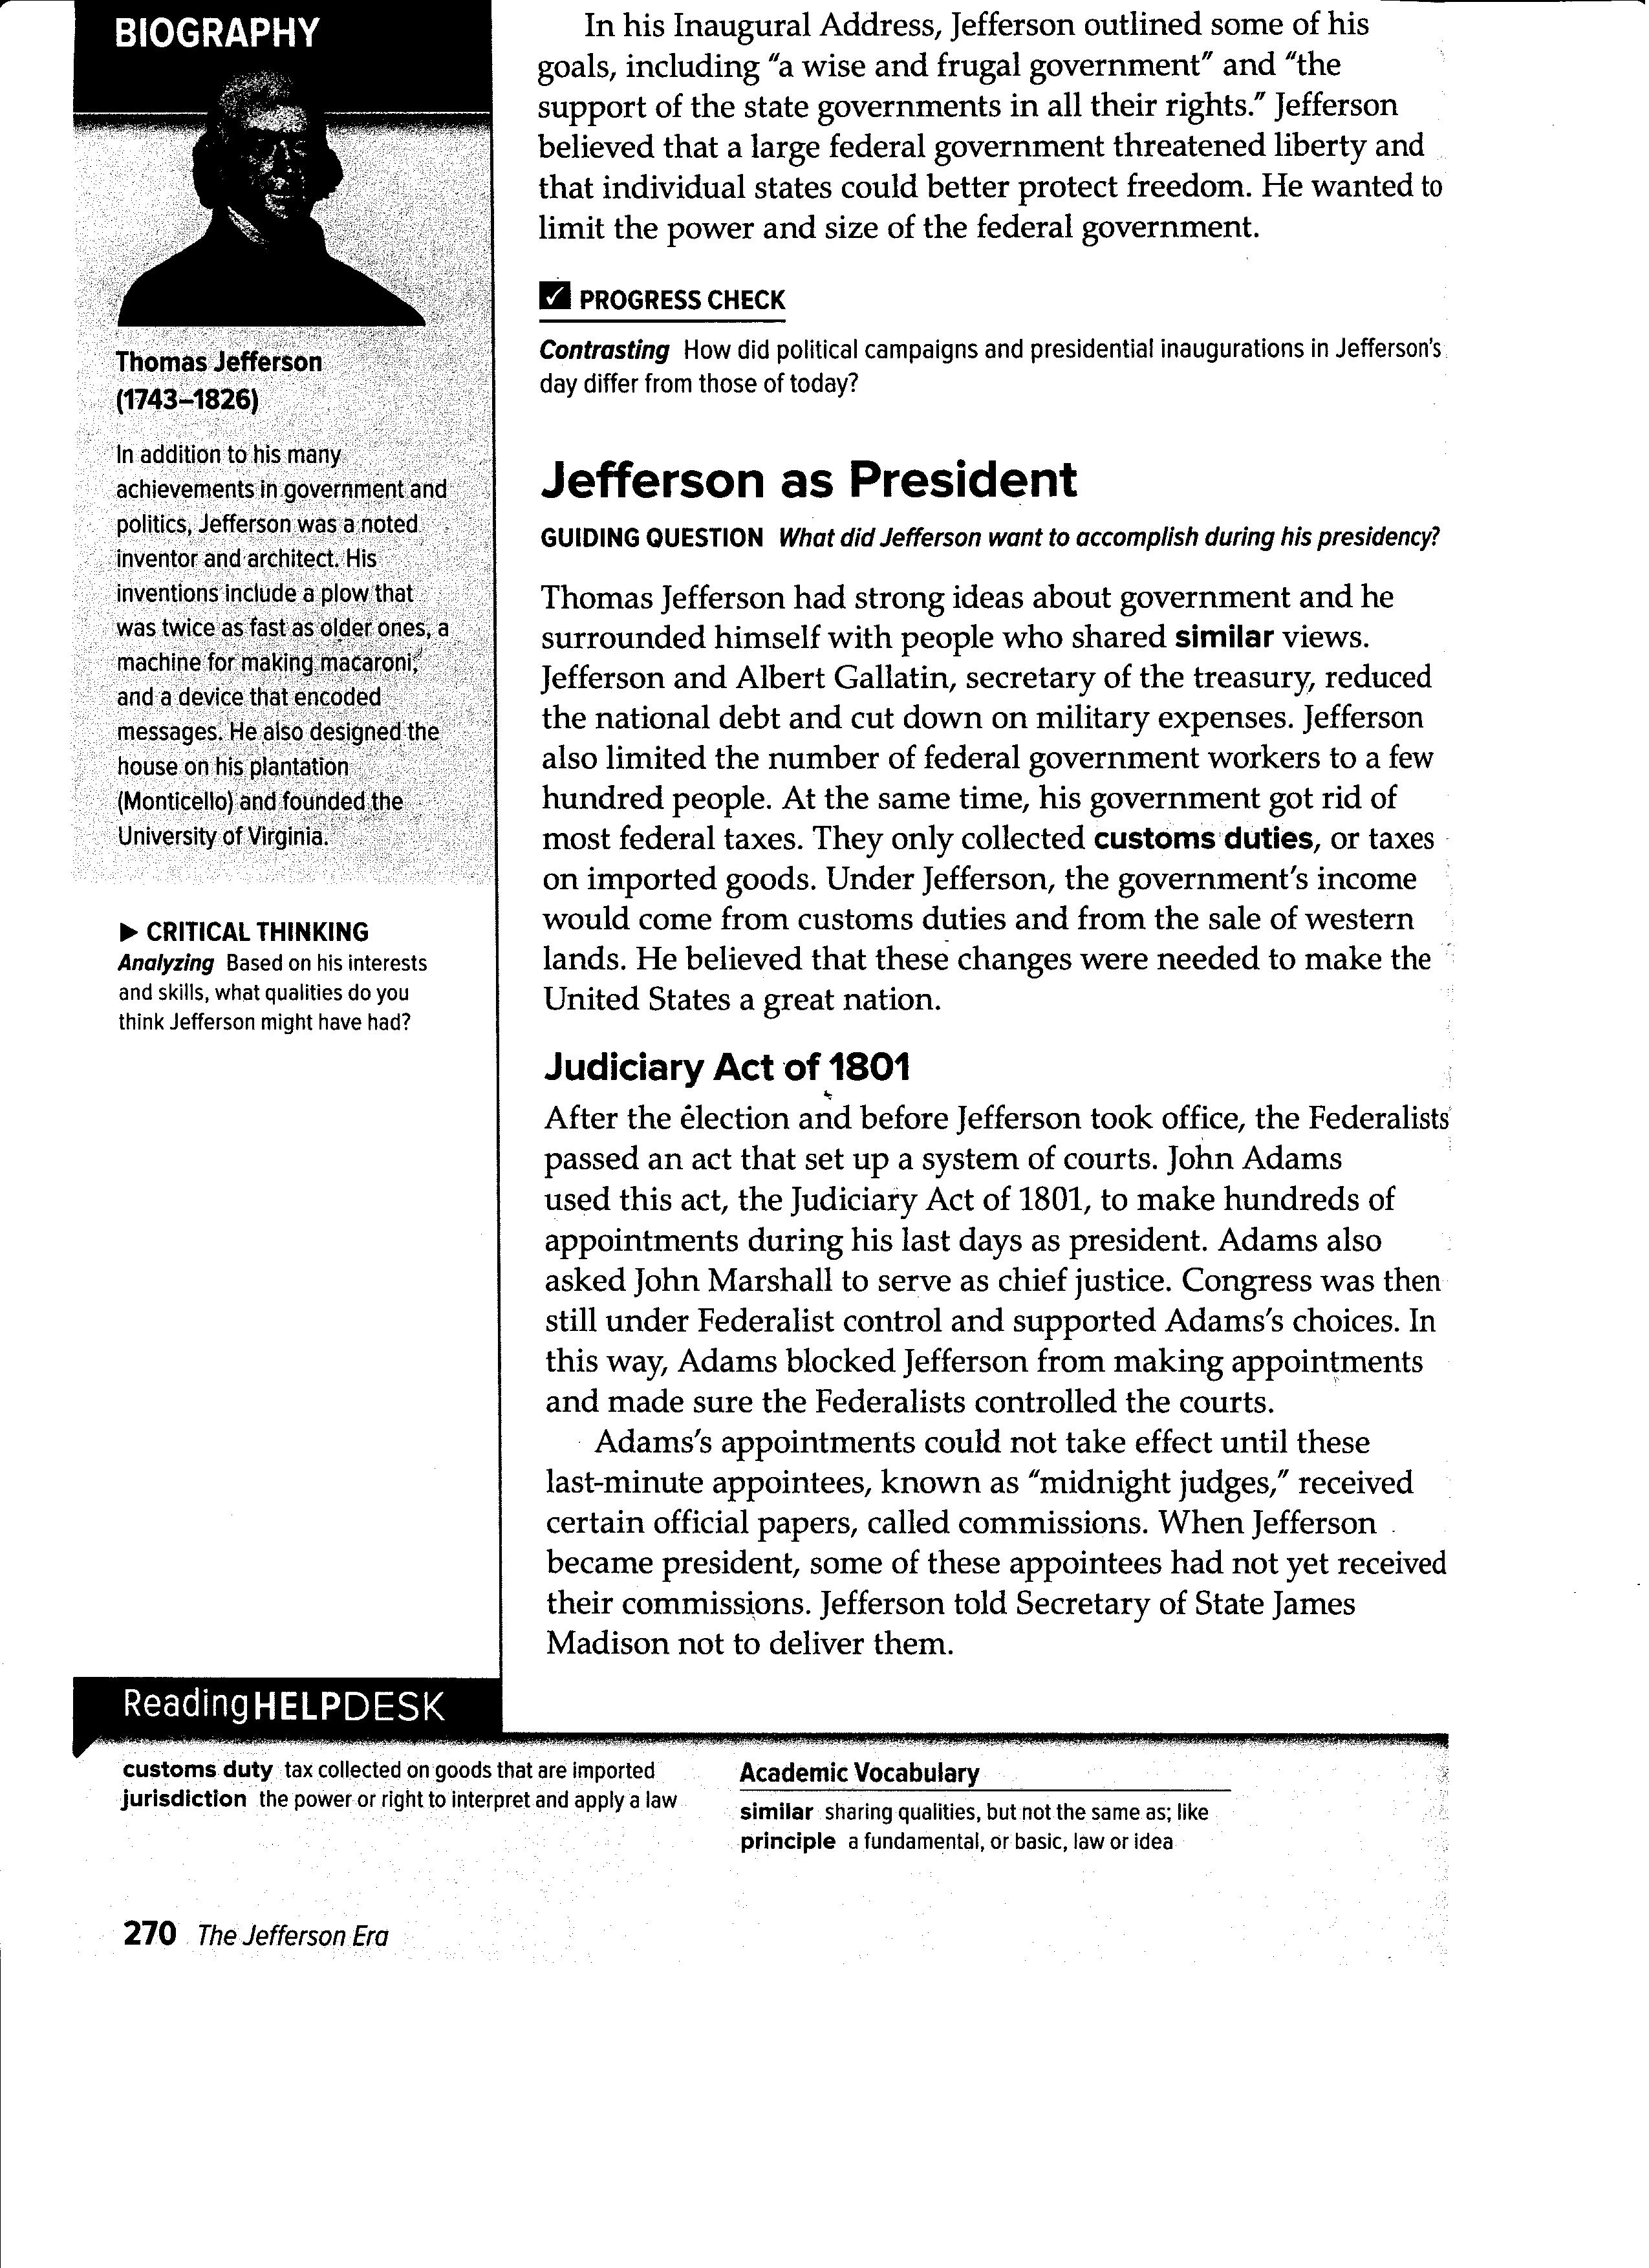 Worksheets Interpreting The Bill Of Rights Worksheet obregon jose homework 2 hw read pages 270 271 by tomorrow begin at jefferson as president